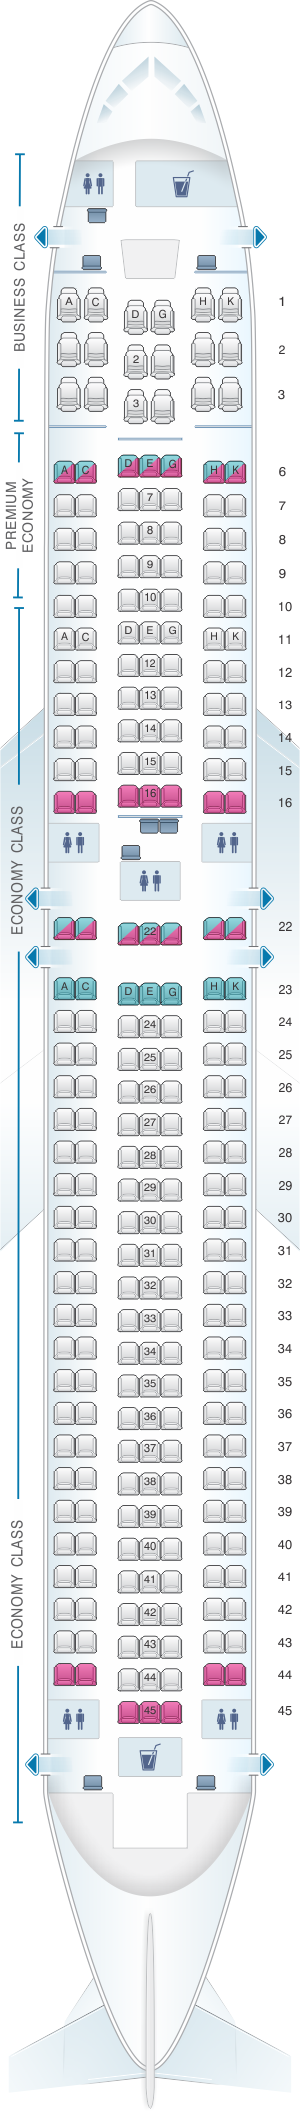 icelandair seat map with Condor Boeing B767 300er Version1 on United Abandons Jfk While Jetblue Grows furthermore Delta Airlines Boeing B737 900er 739 further Westjet New Flights To London Uk From Six Canadian Cities From Spring 2016 in addition Watch as well Boeing 757 300 United Airlines Photos And Description Of The Plane.